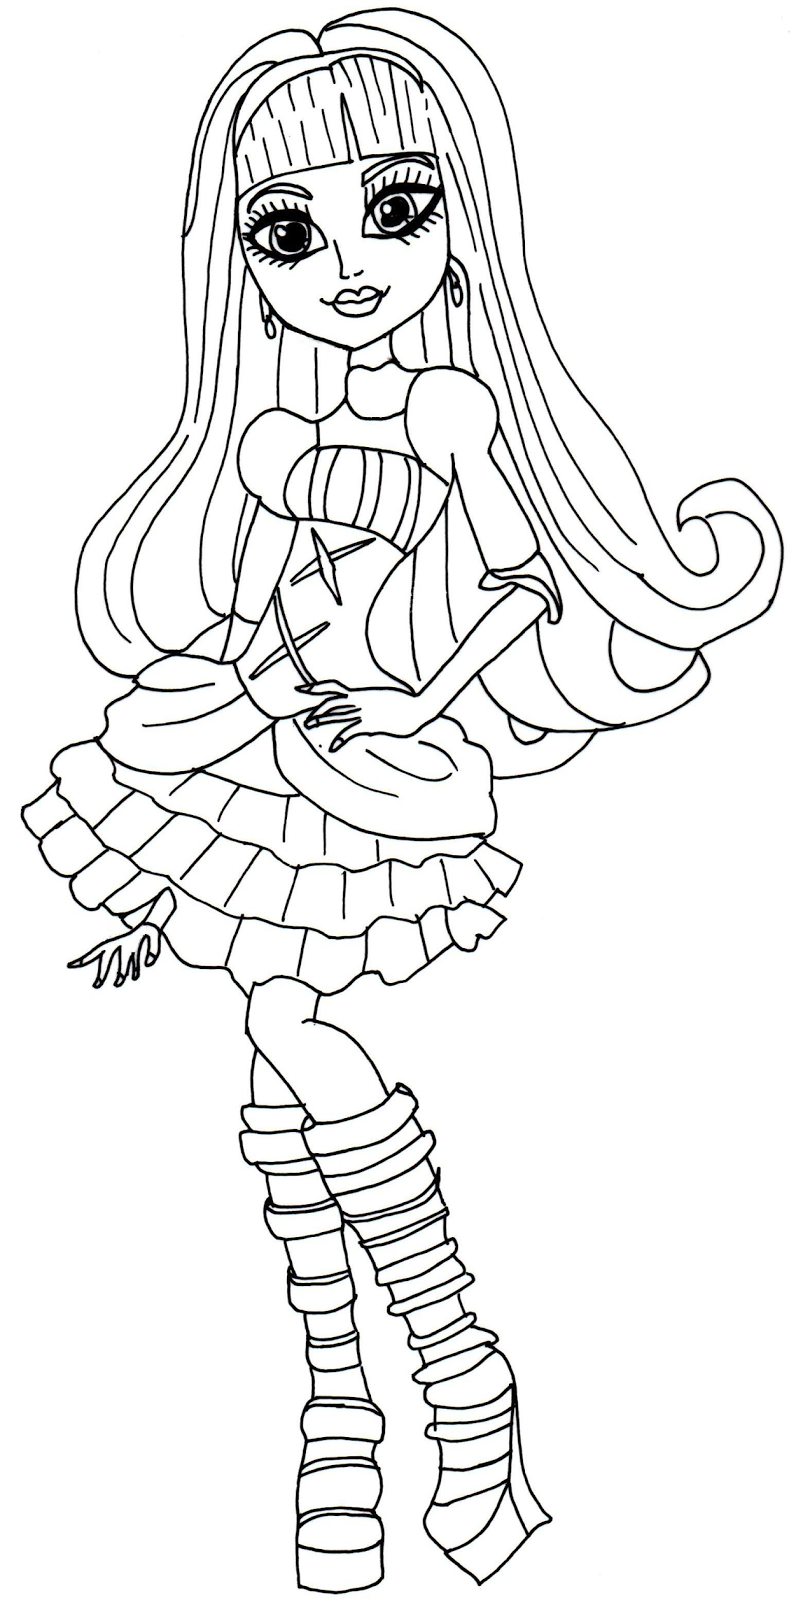 monster high coloring pages elissabat - Google Search | coloring ...